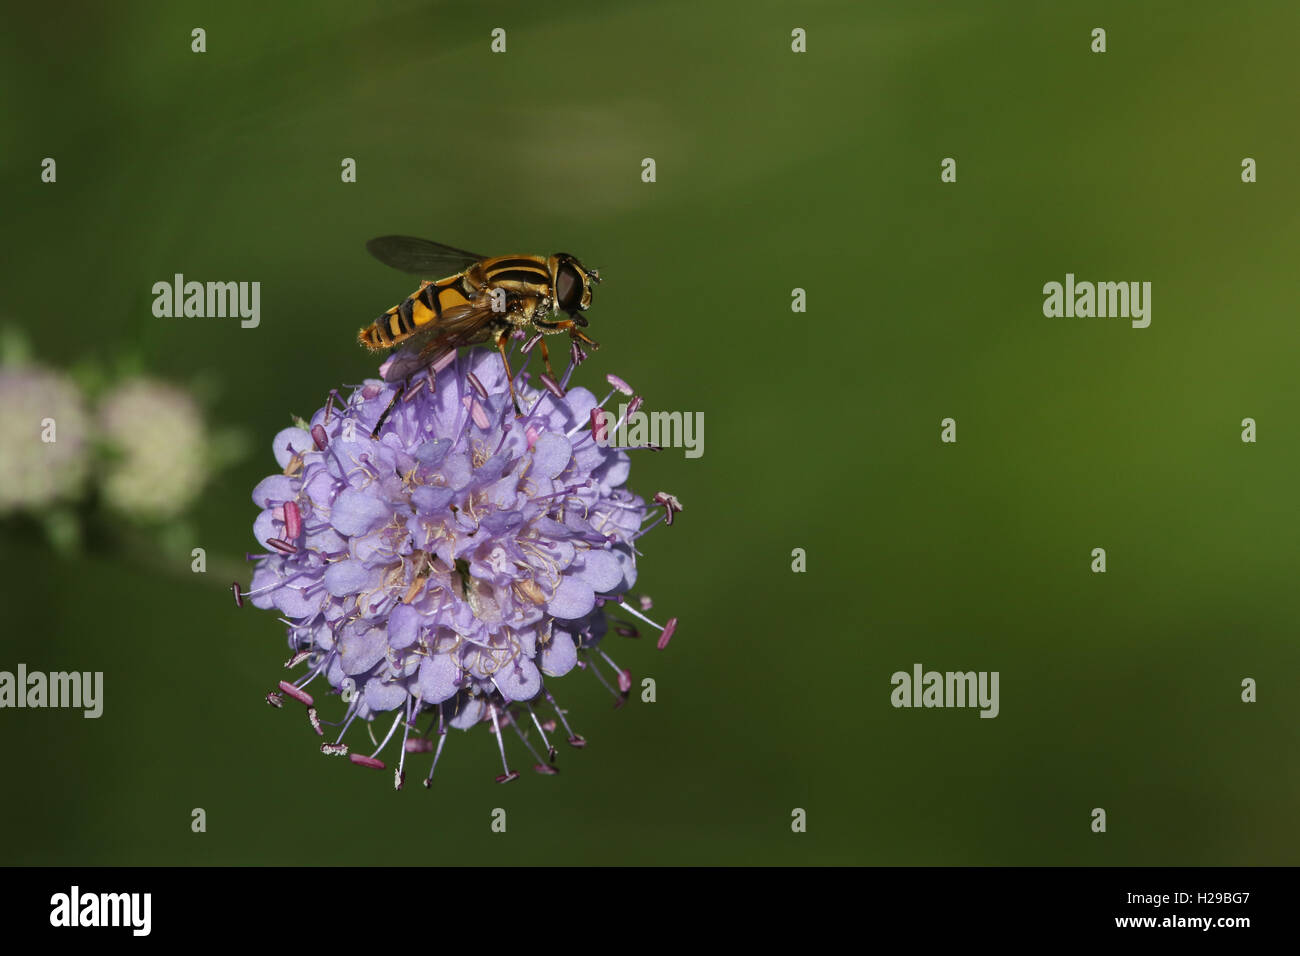 A Hoverfly feeding on a Scabious flower. - Stock Image